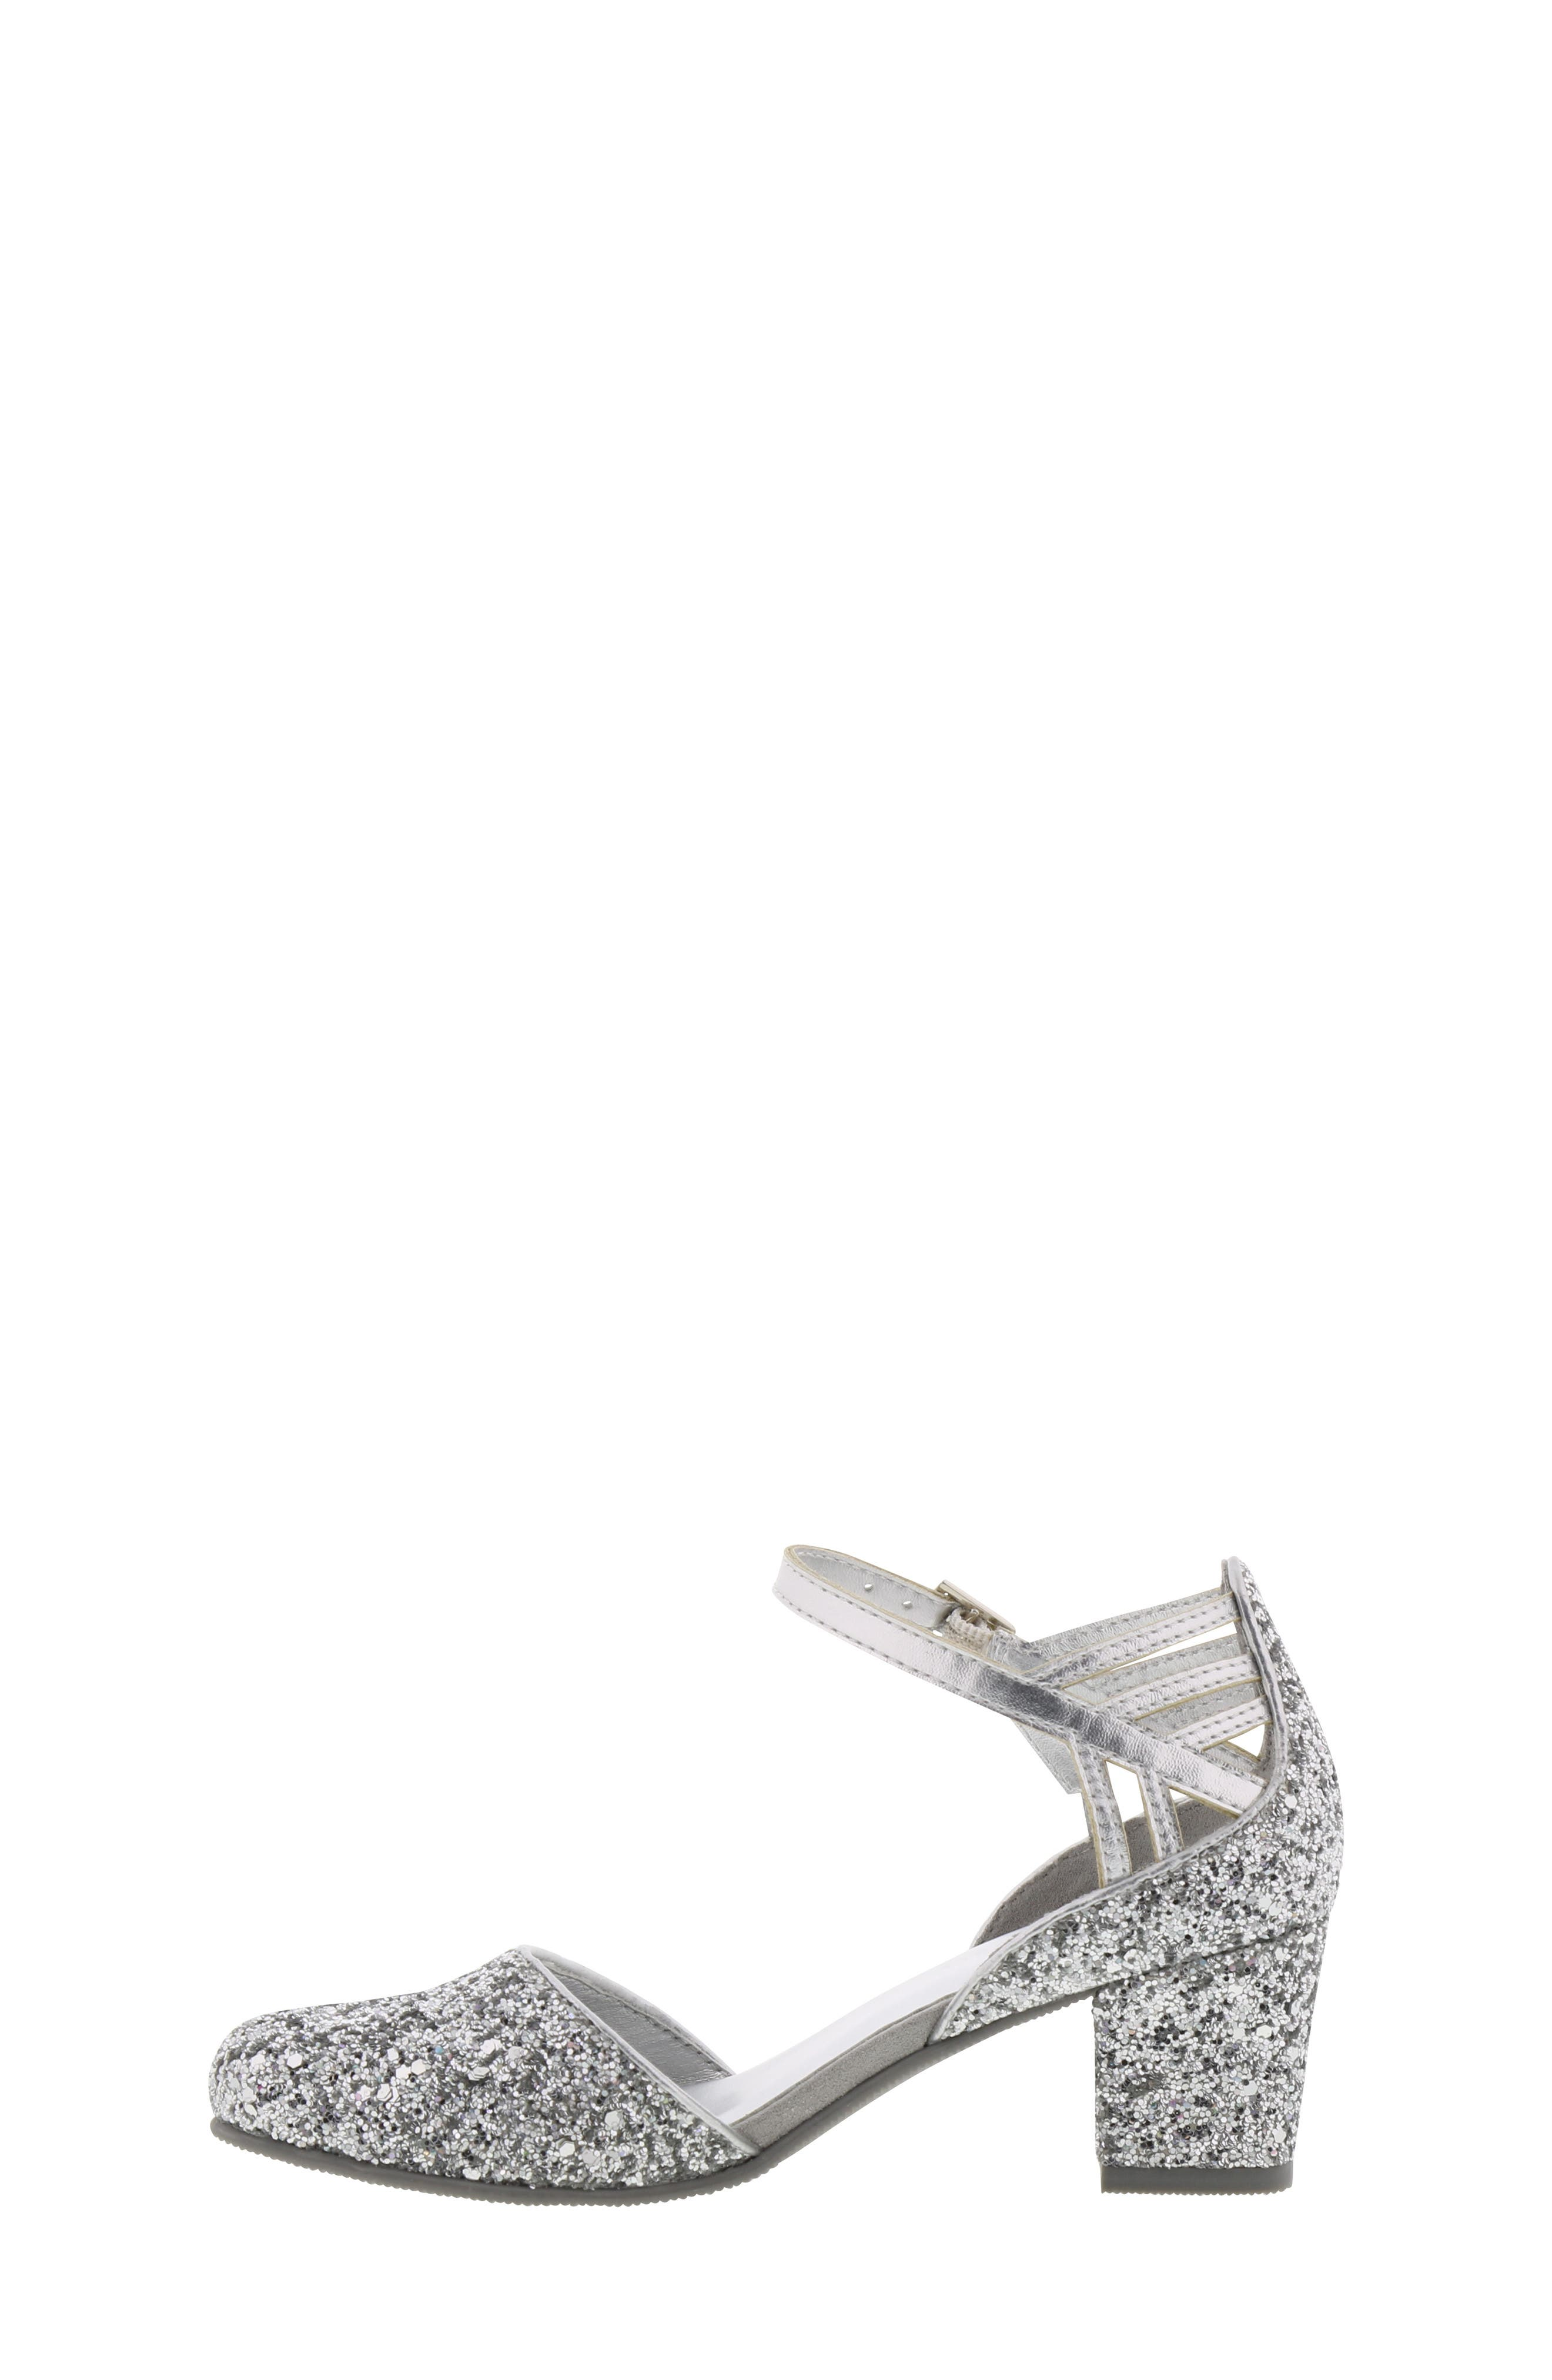 REACTION KENNETH COLE, Kenneth Cole New York Sarah Shine Pump, Alternate thumbnail 9, color, SILVER MULTI